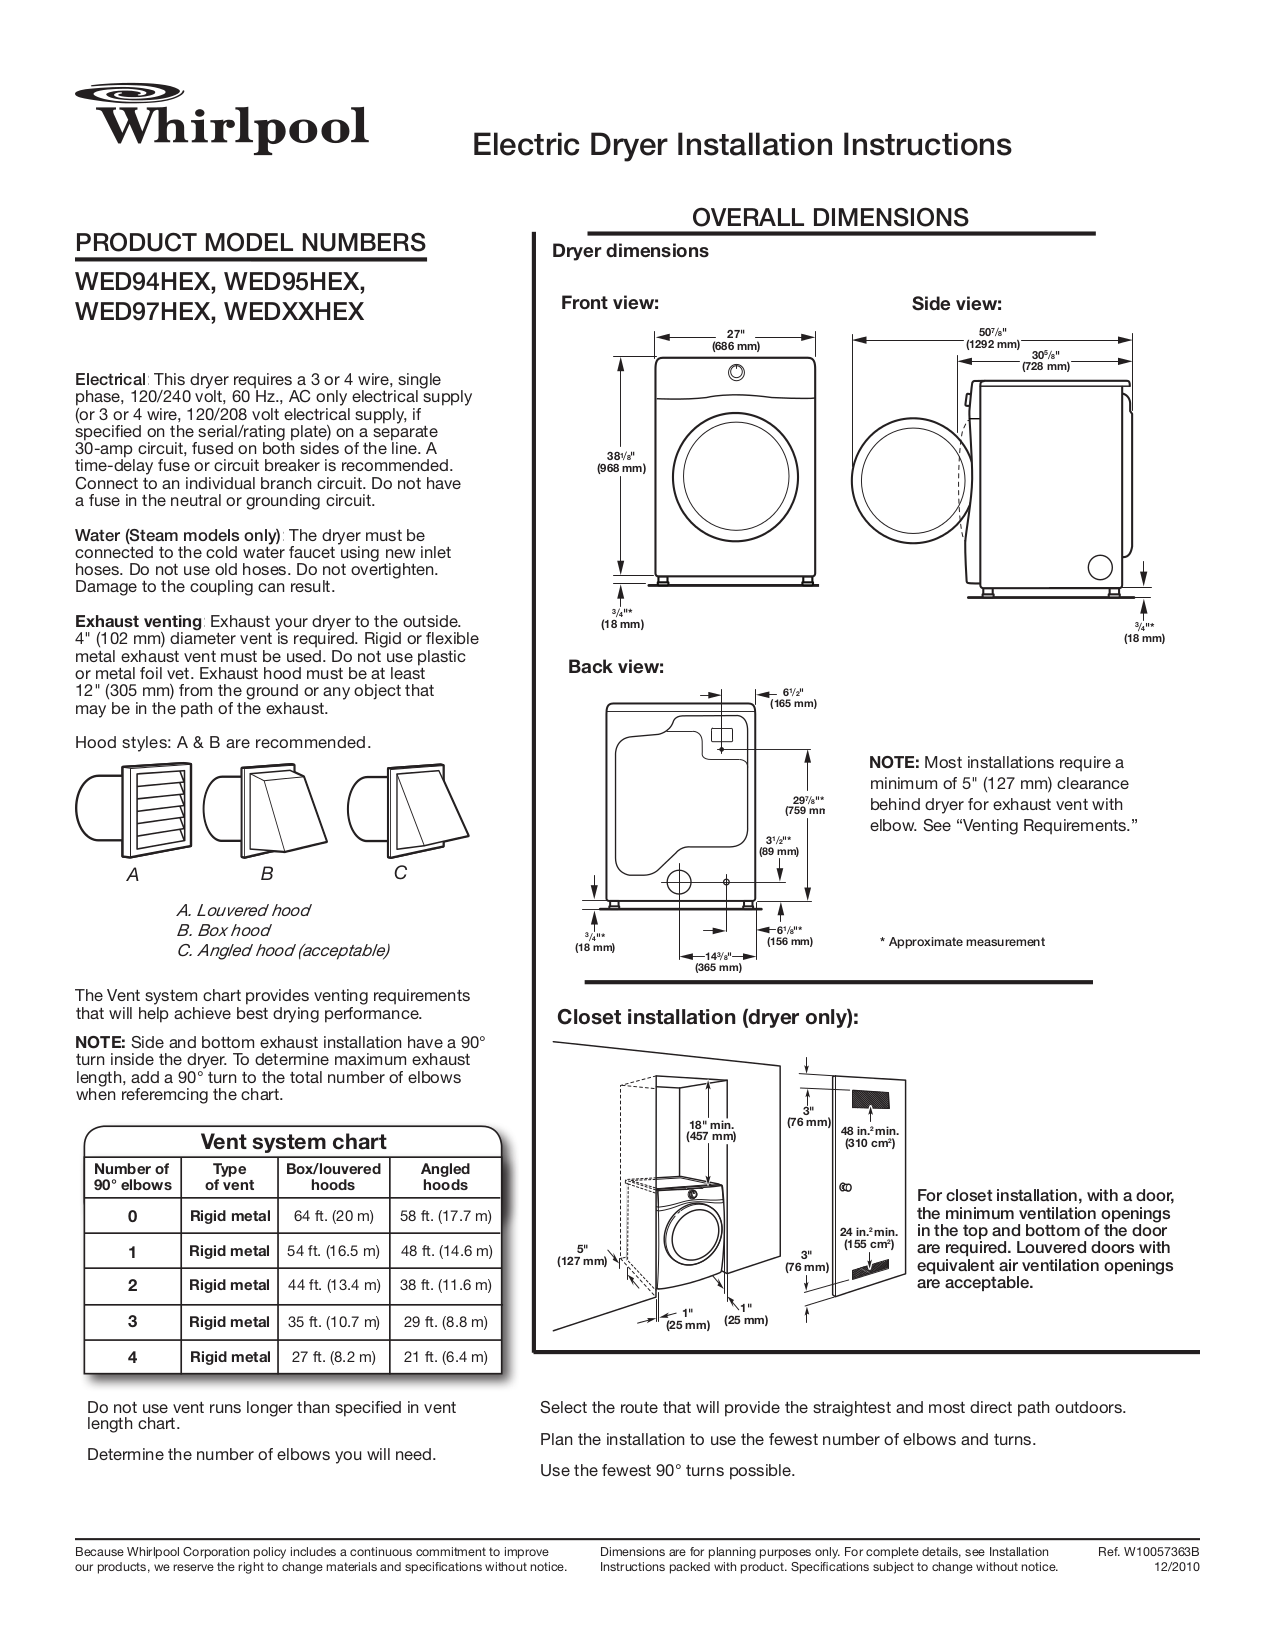 Whirlpool Dryer Manual Free Download Senseon Wiring Diagram Pdf For Duet Steam Wed97hex